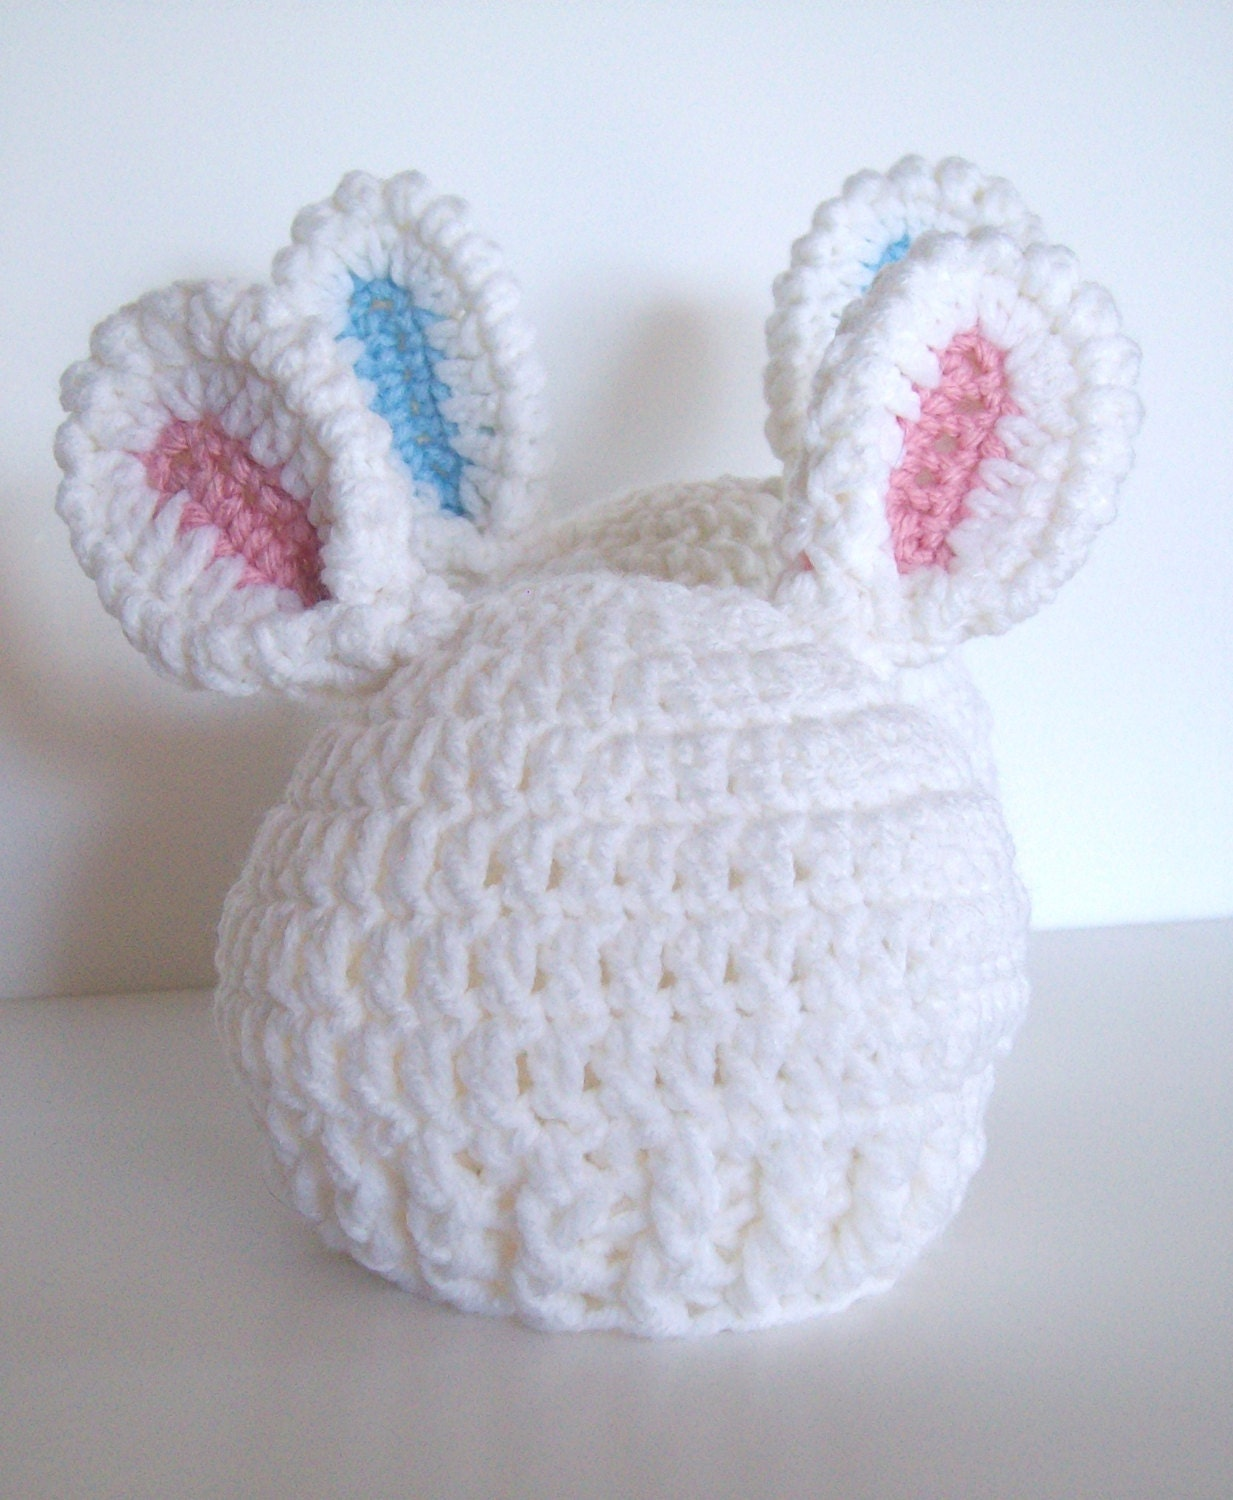 Crochet White Bunny Ears Hat - Bunny Ears Baby Hat - Size 6 - 12 months... Choice of White with Blue or Pink Ears Crochet White Bunny Hat - puddintoes